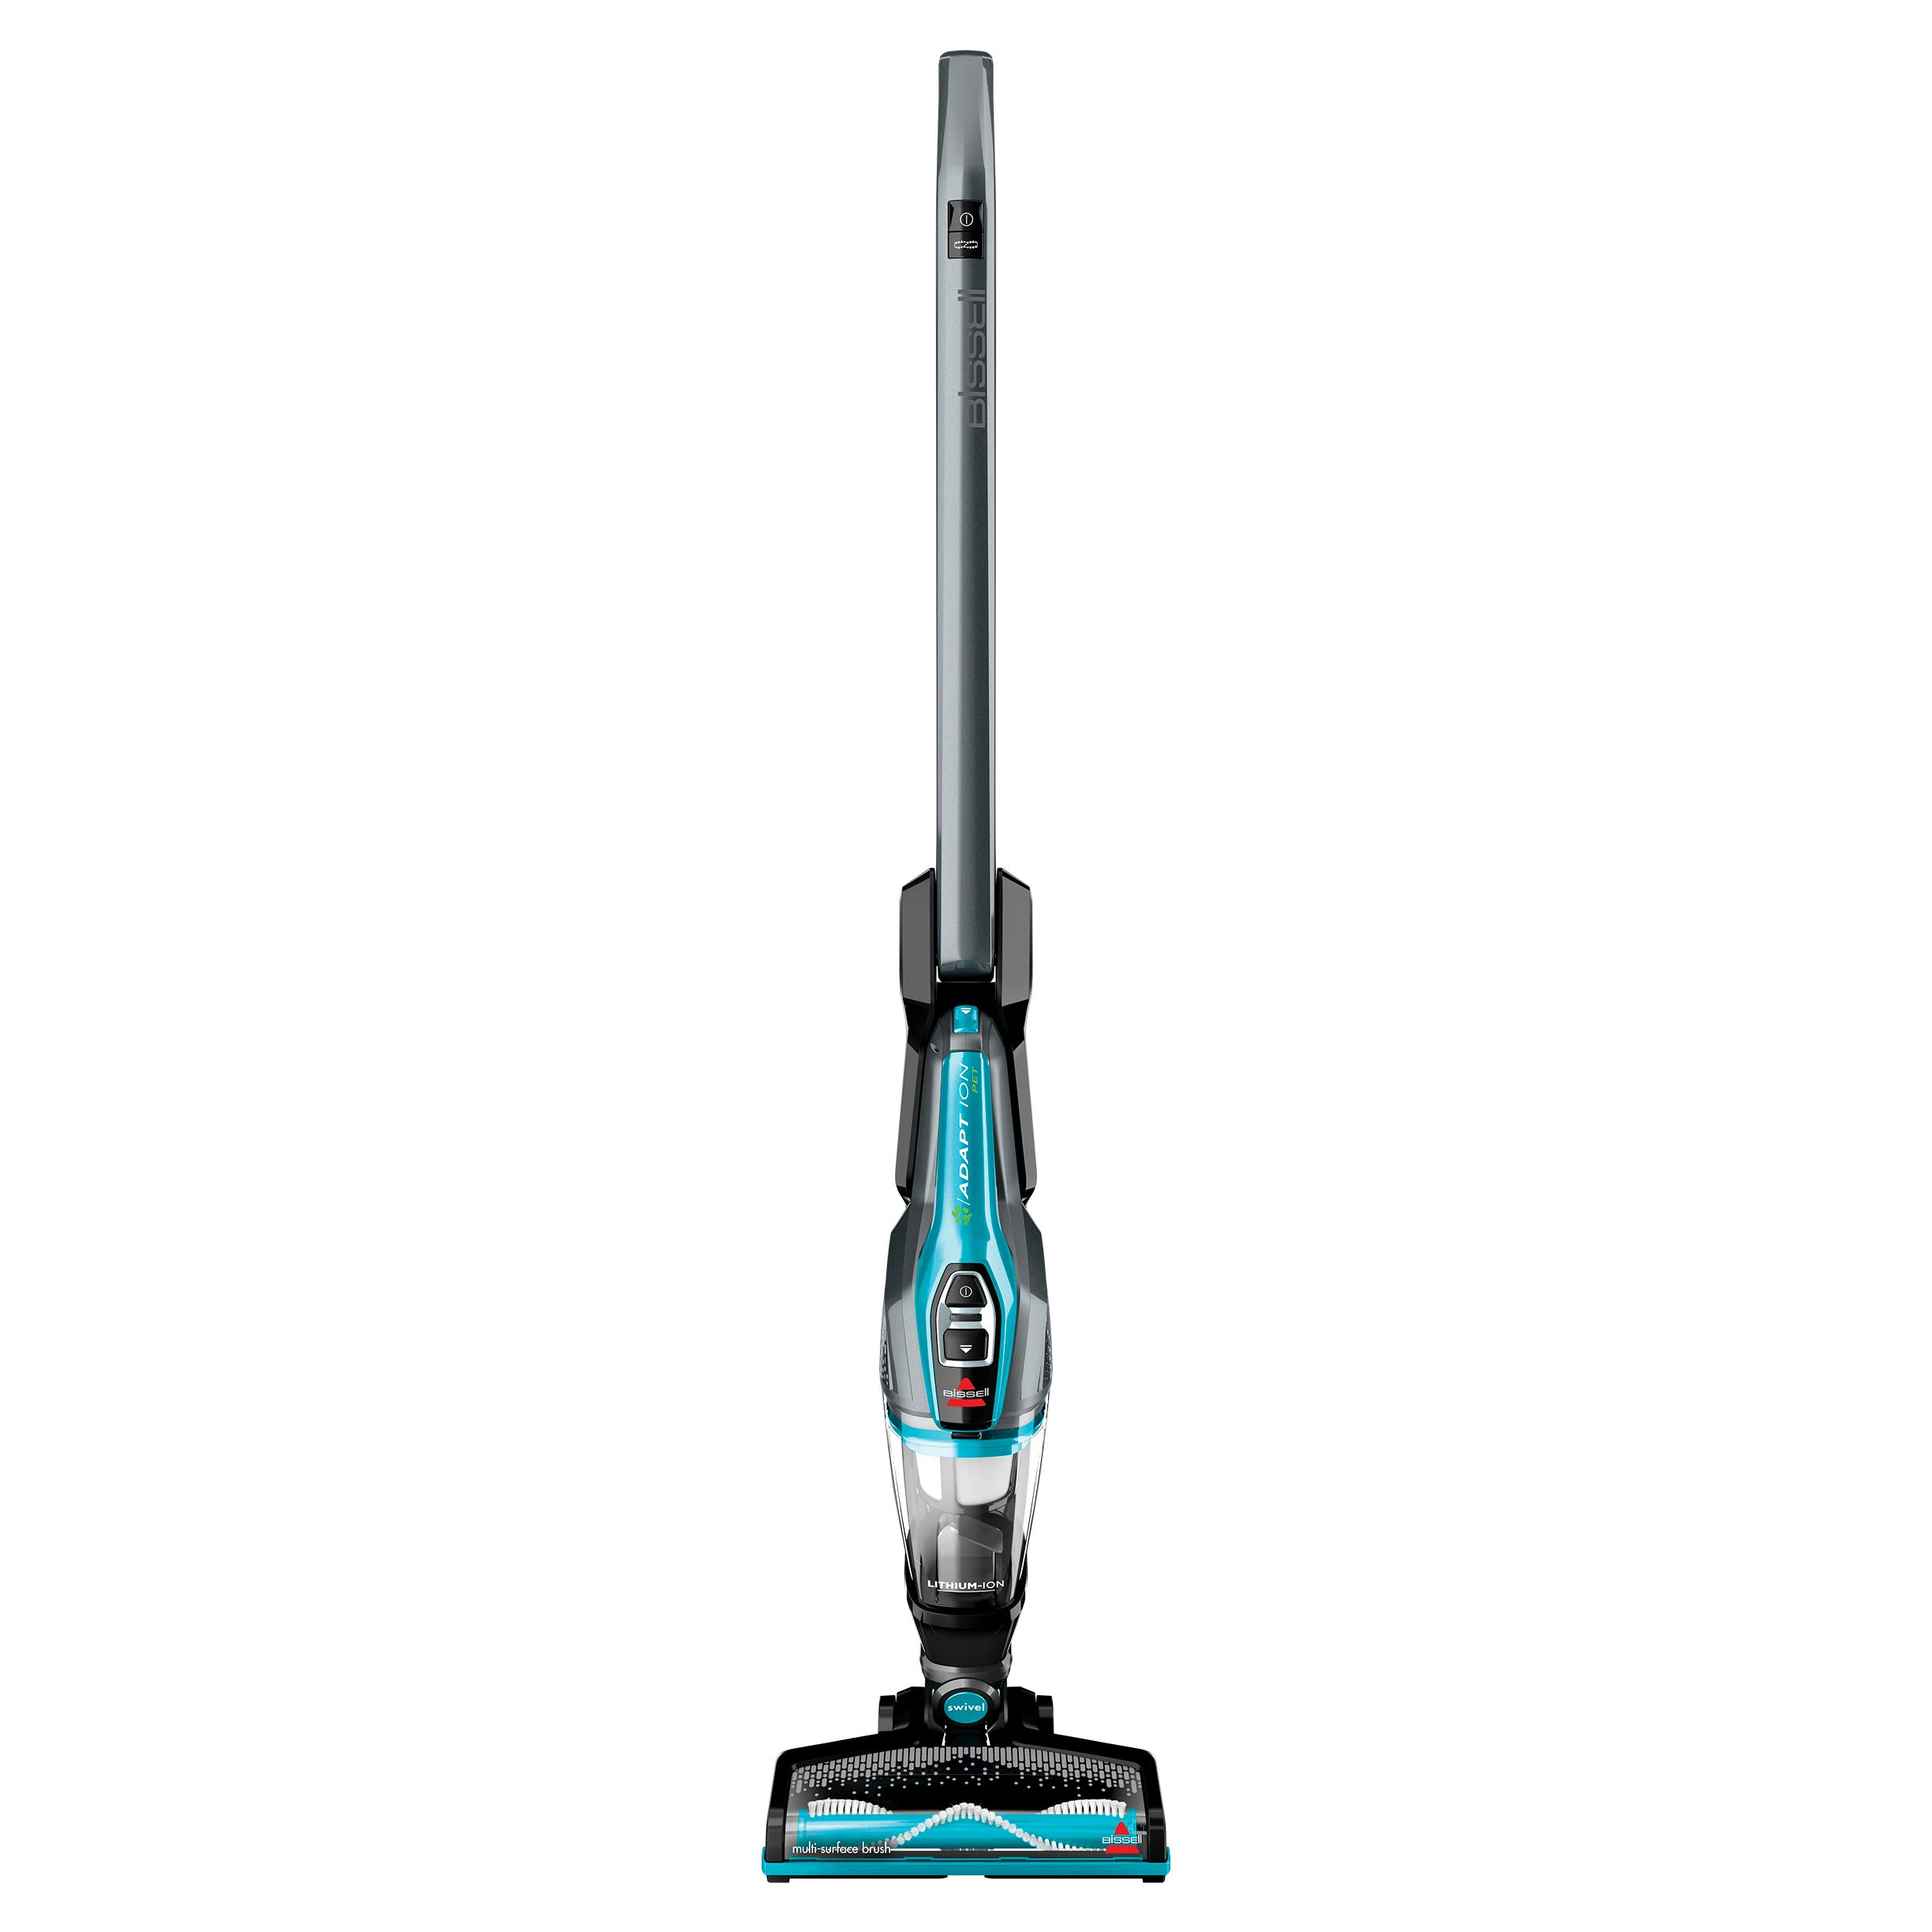 BISSELL Adapt Ion Pet 10.8V Lithium Ion 2 in 1 Cordless Stick Vacuum, Teal, 2286A by Bissell